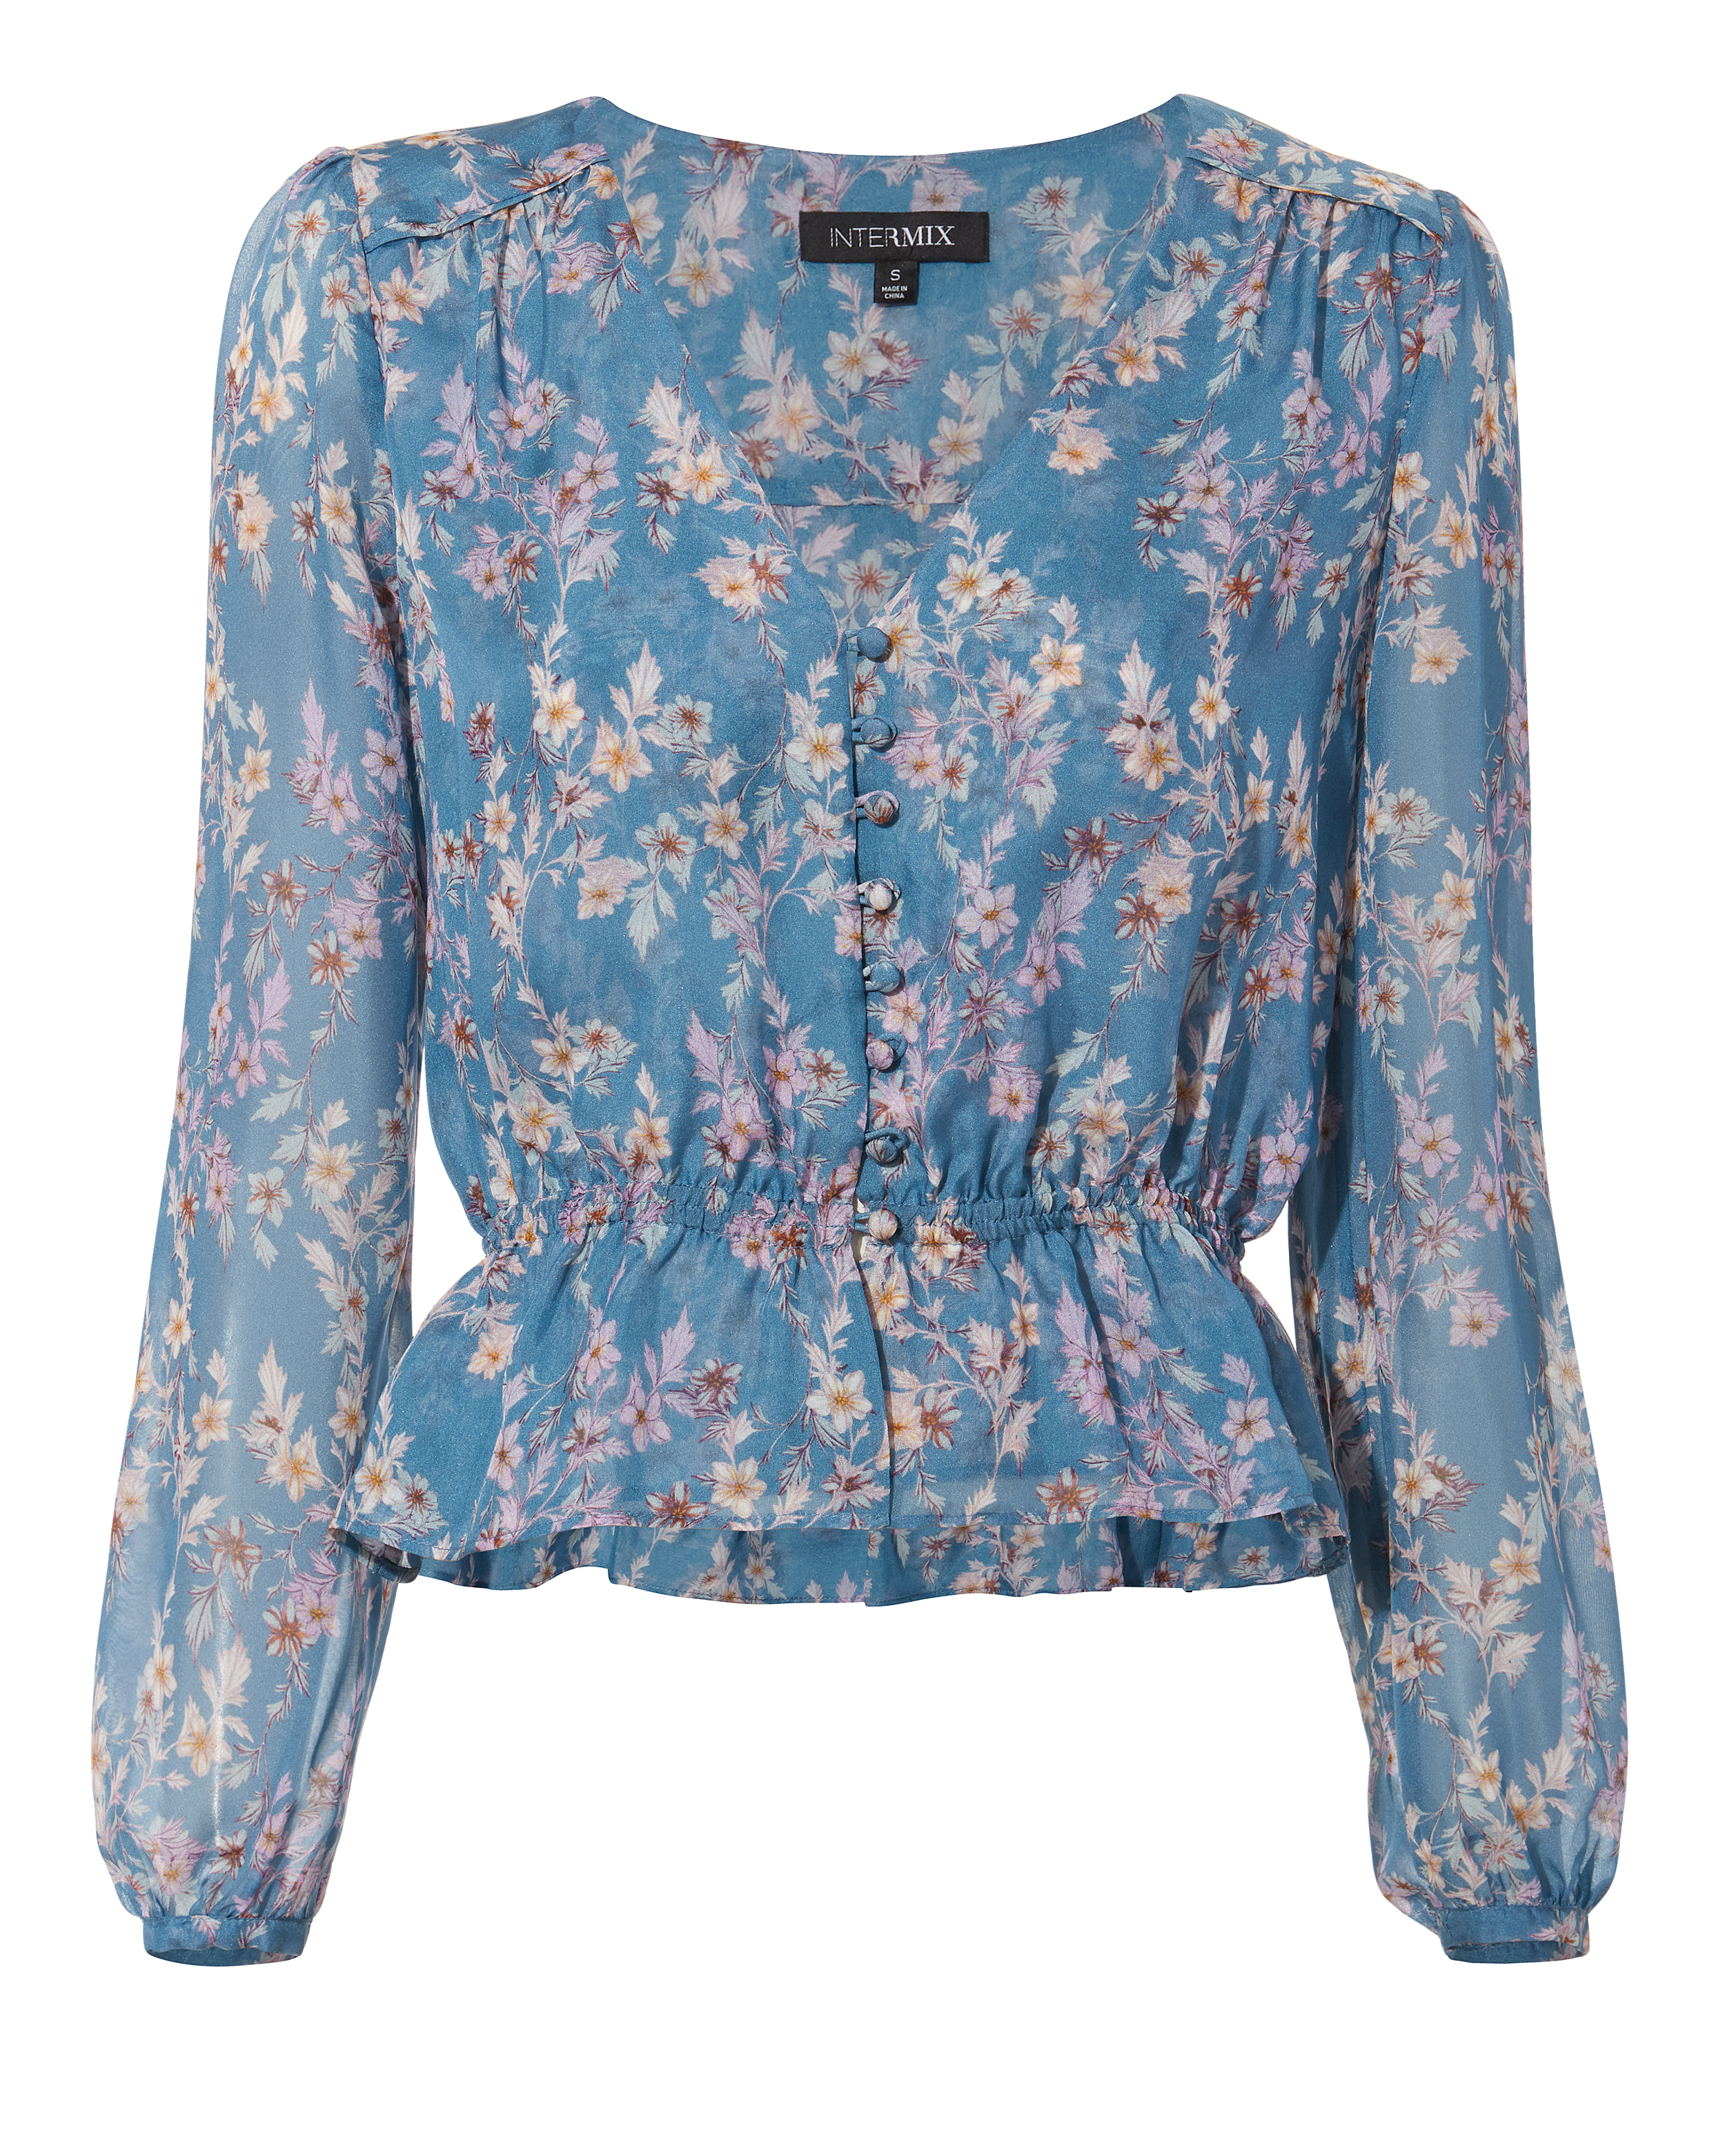 Clare Blouse by Intermix